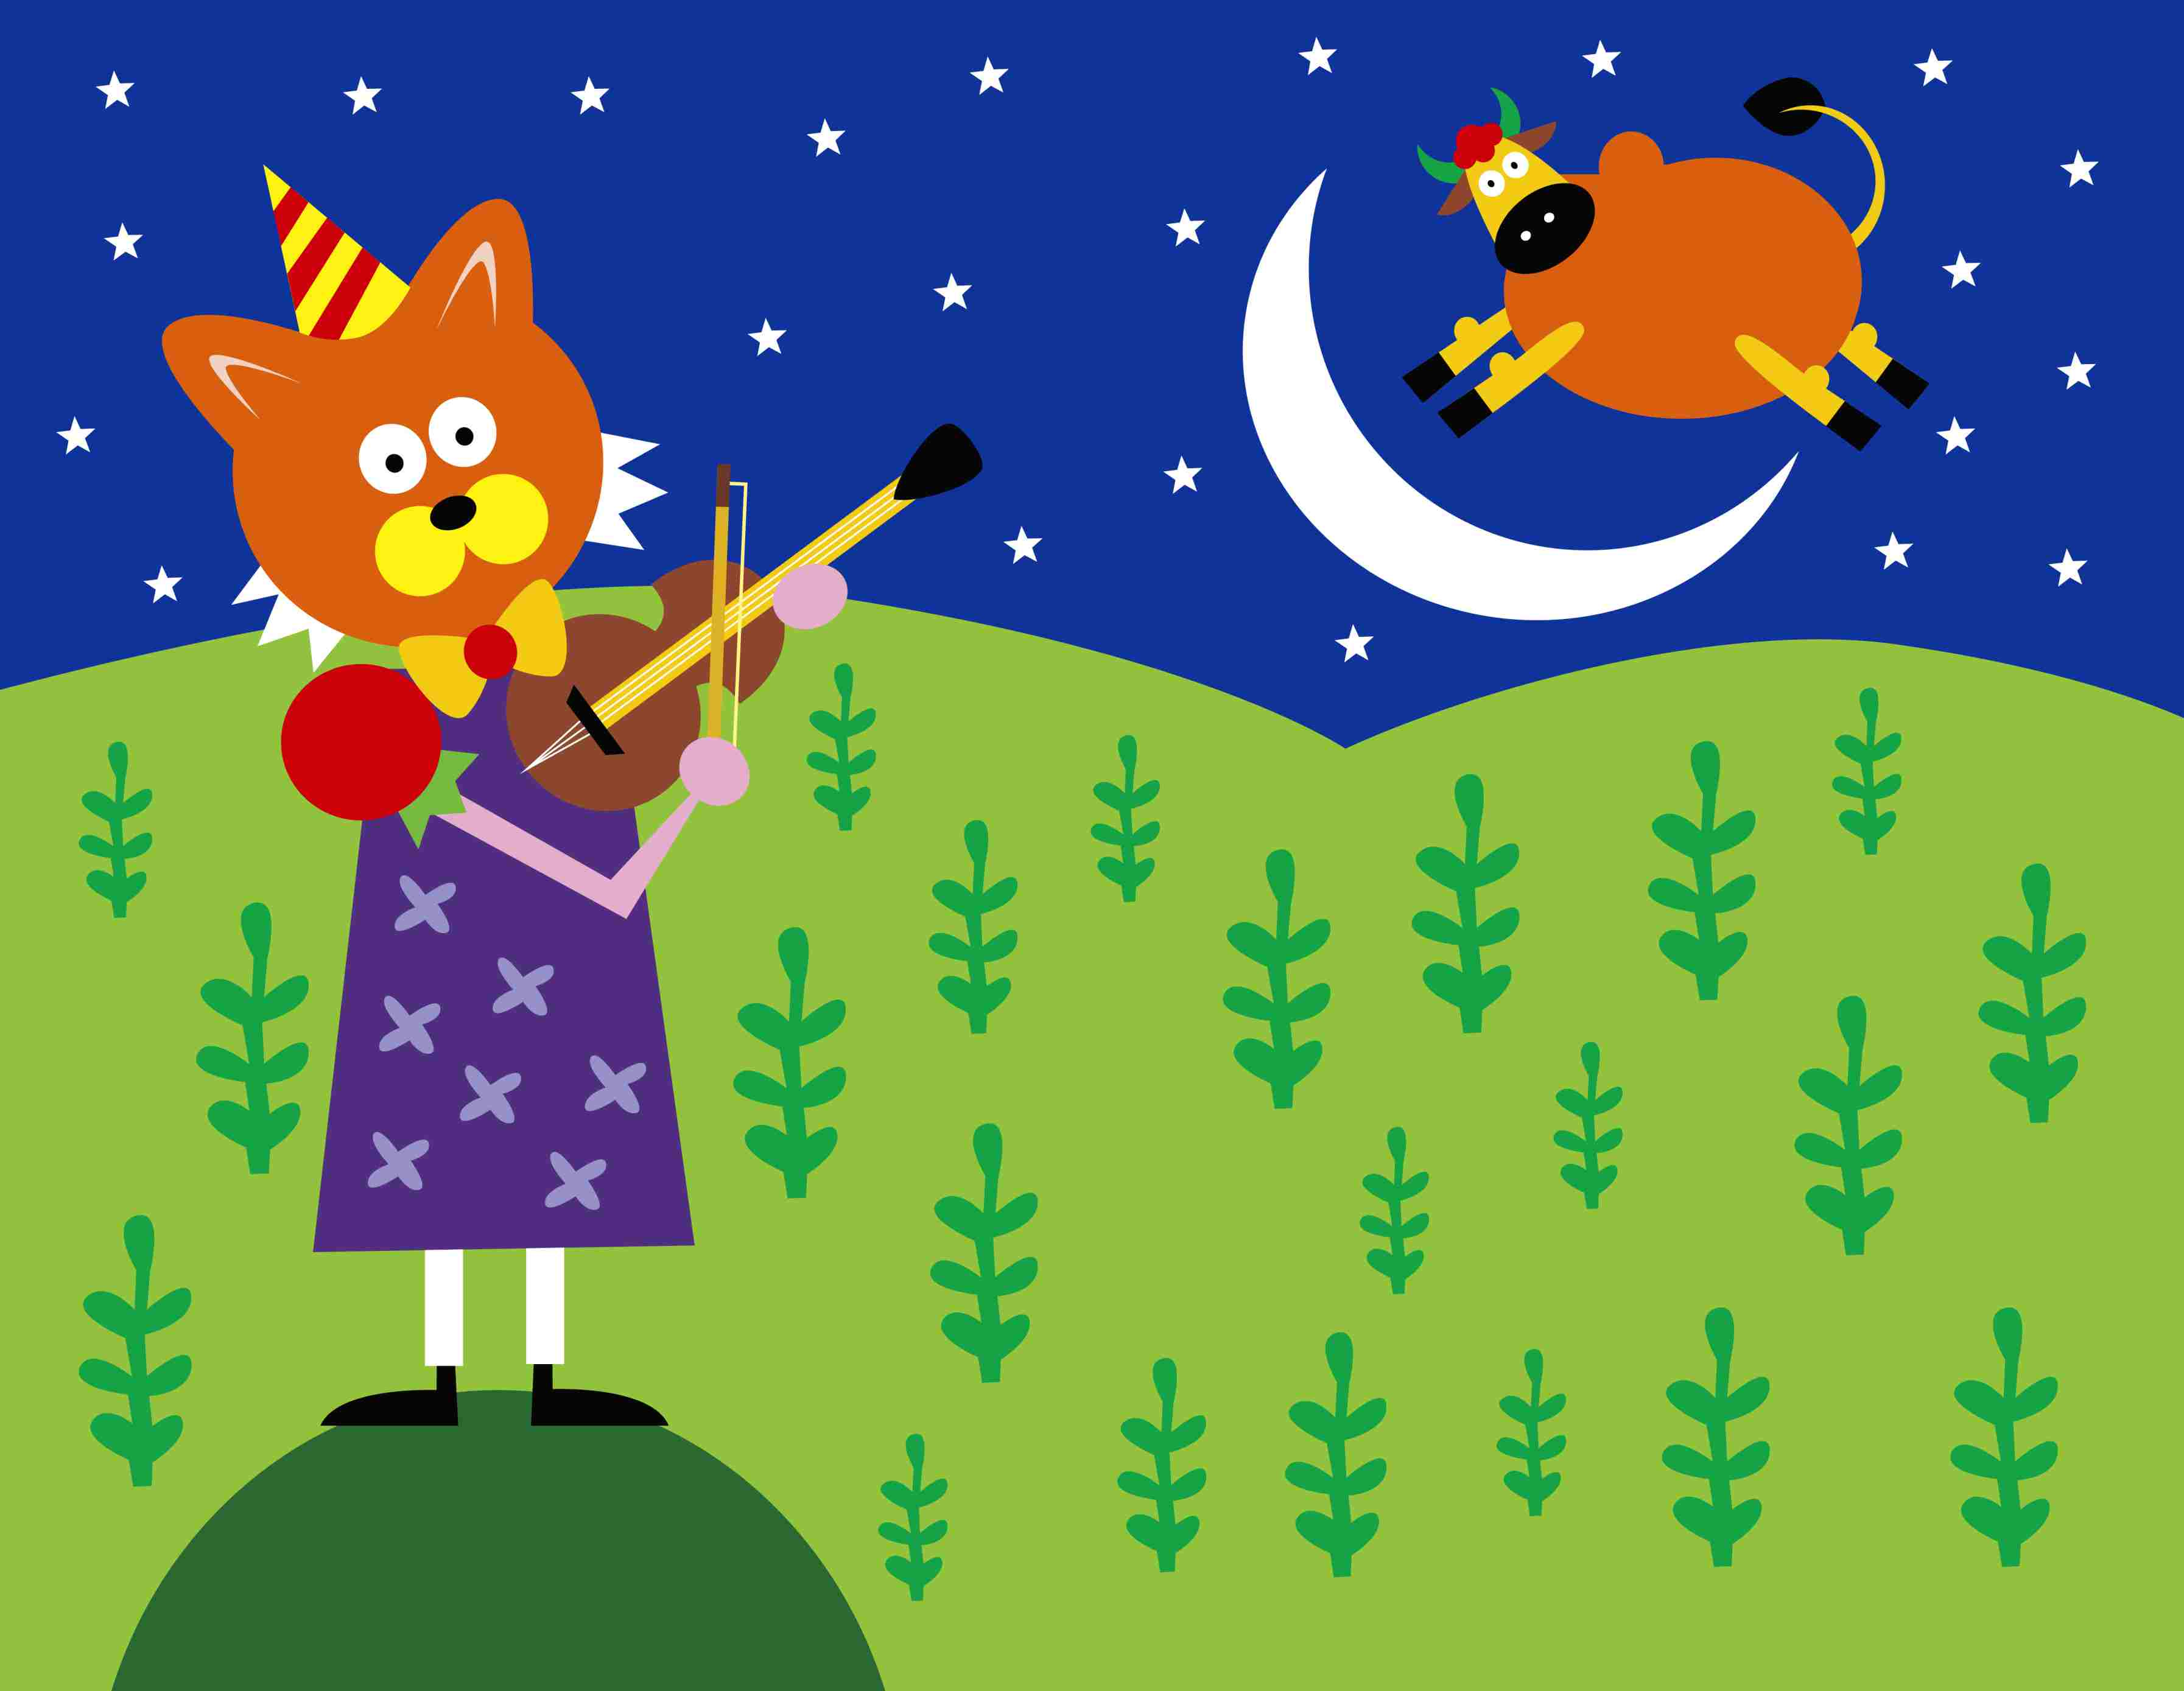 Illustration of a cat playing a violin and a cow jumping over the moon